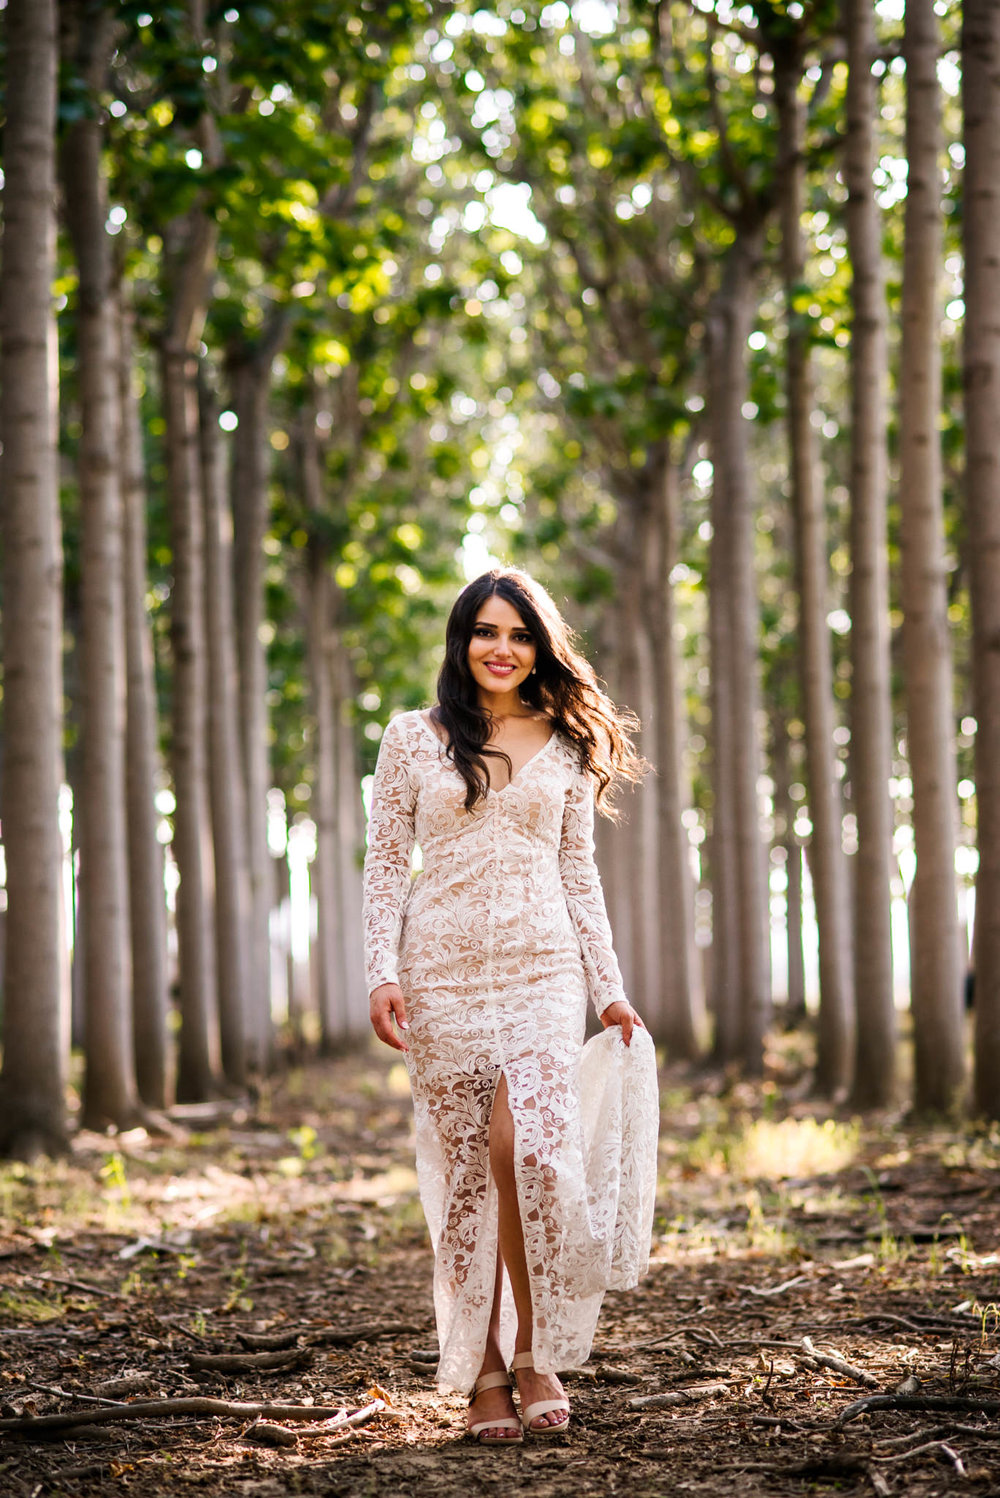 Lace wedding gown.jpg